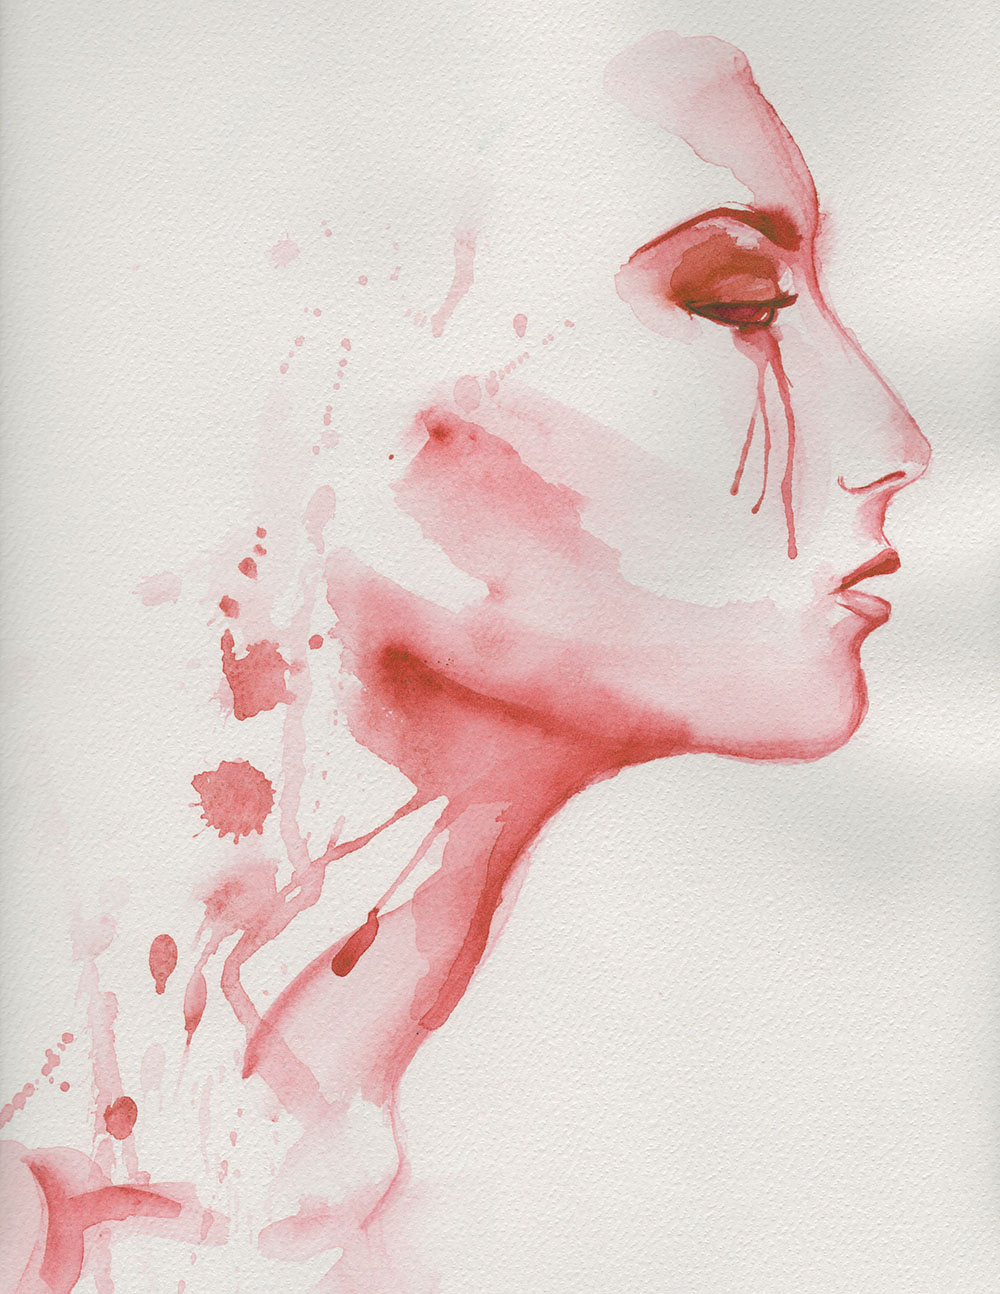 image of a Gil crying painted with red wine